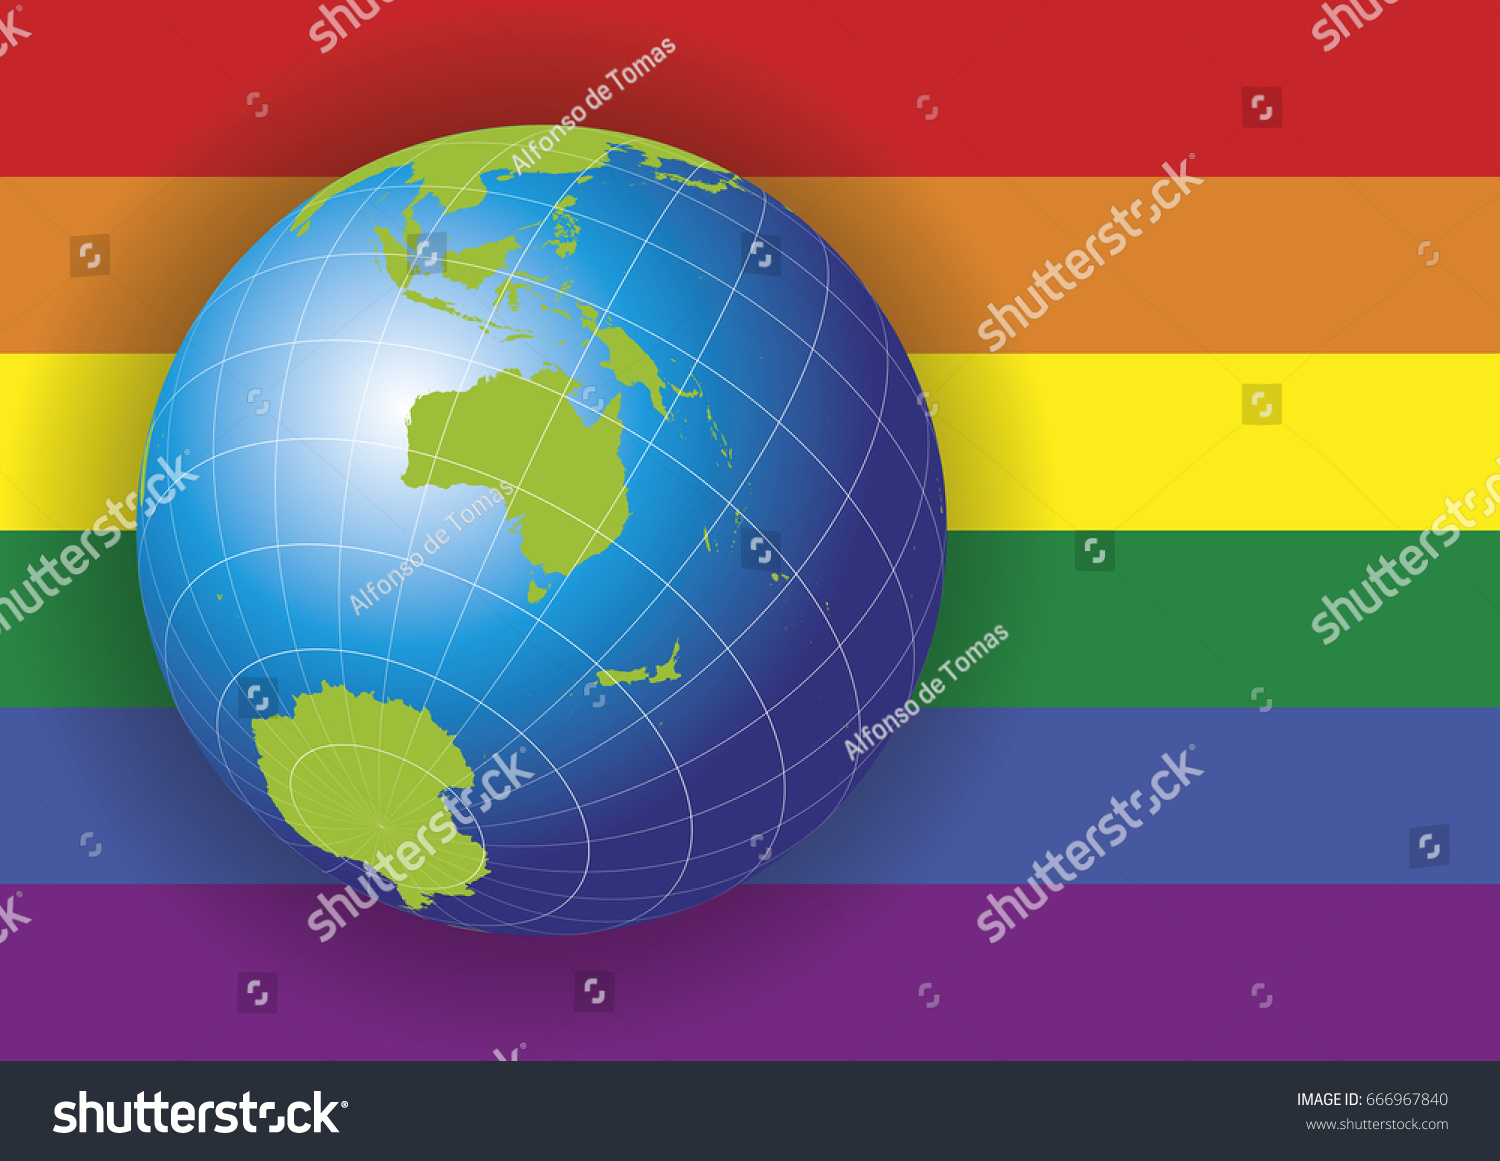 Australia map earth globe over gay vectores en stock 666967840 australia map earth globe over a gay rainbow flag background asia russia gumiabroncs Choice Image